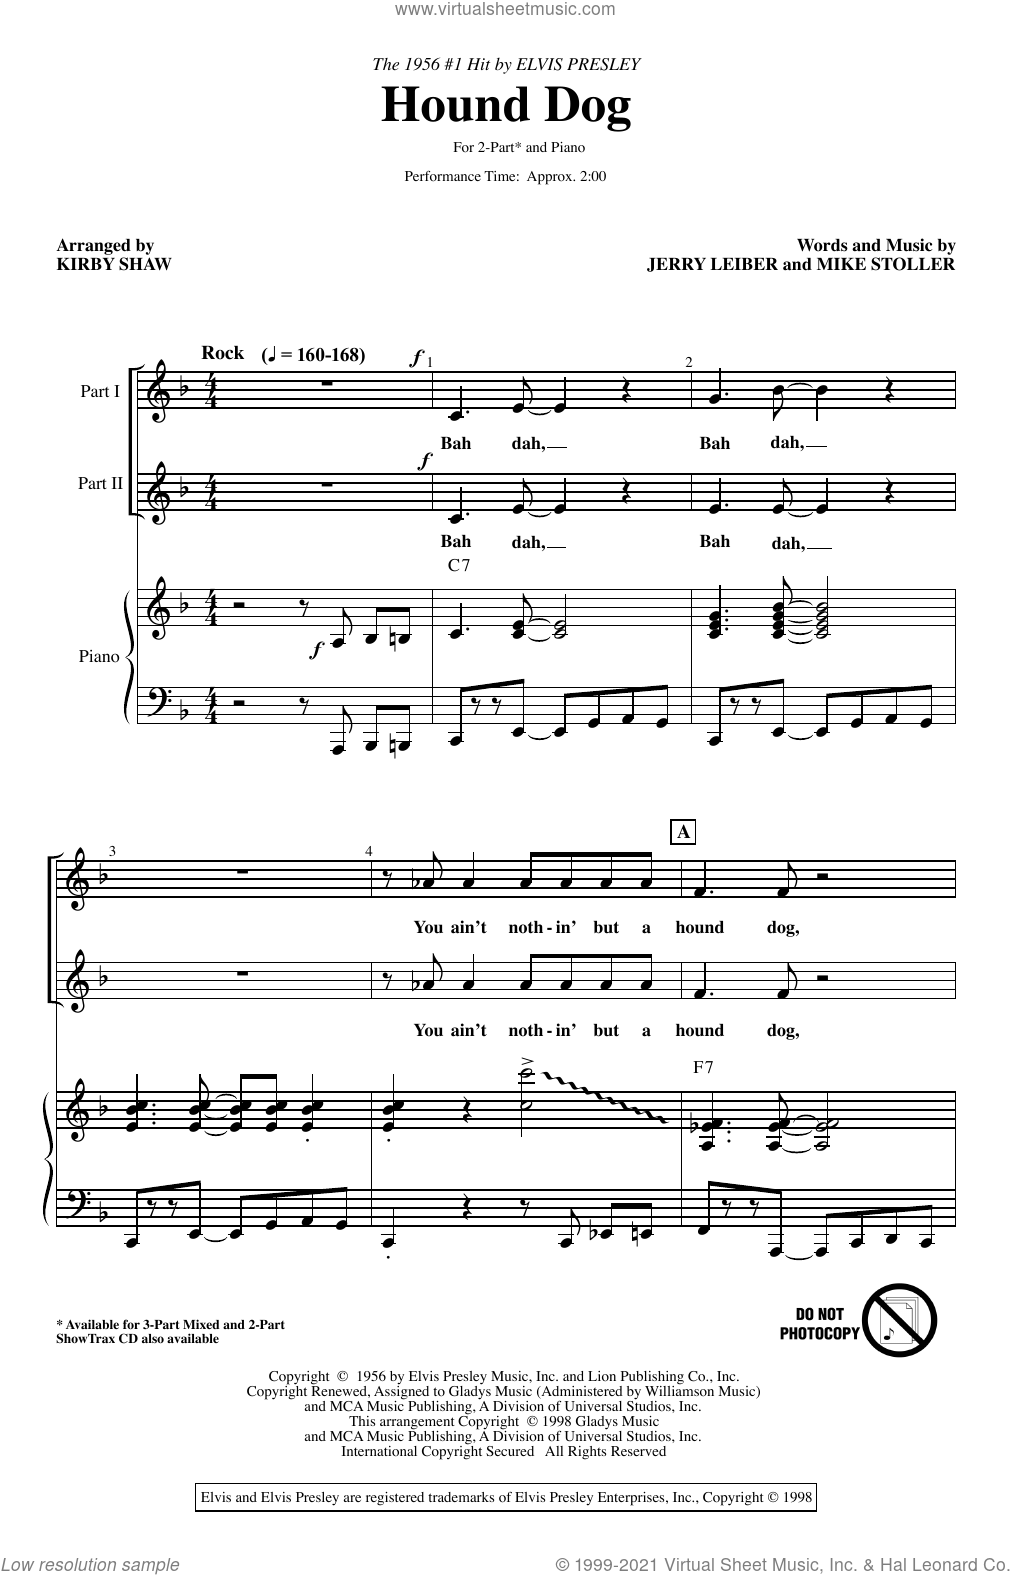 Hound Dog (arr. Kirby Shaw) sheet music for choir (2-Part) by Elvis Presley, Kirby Shaw, Jerry Leiber and Mike Stoller, intermediate duet